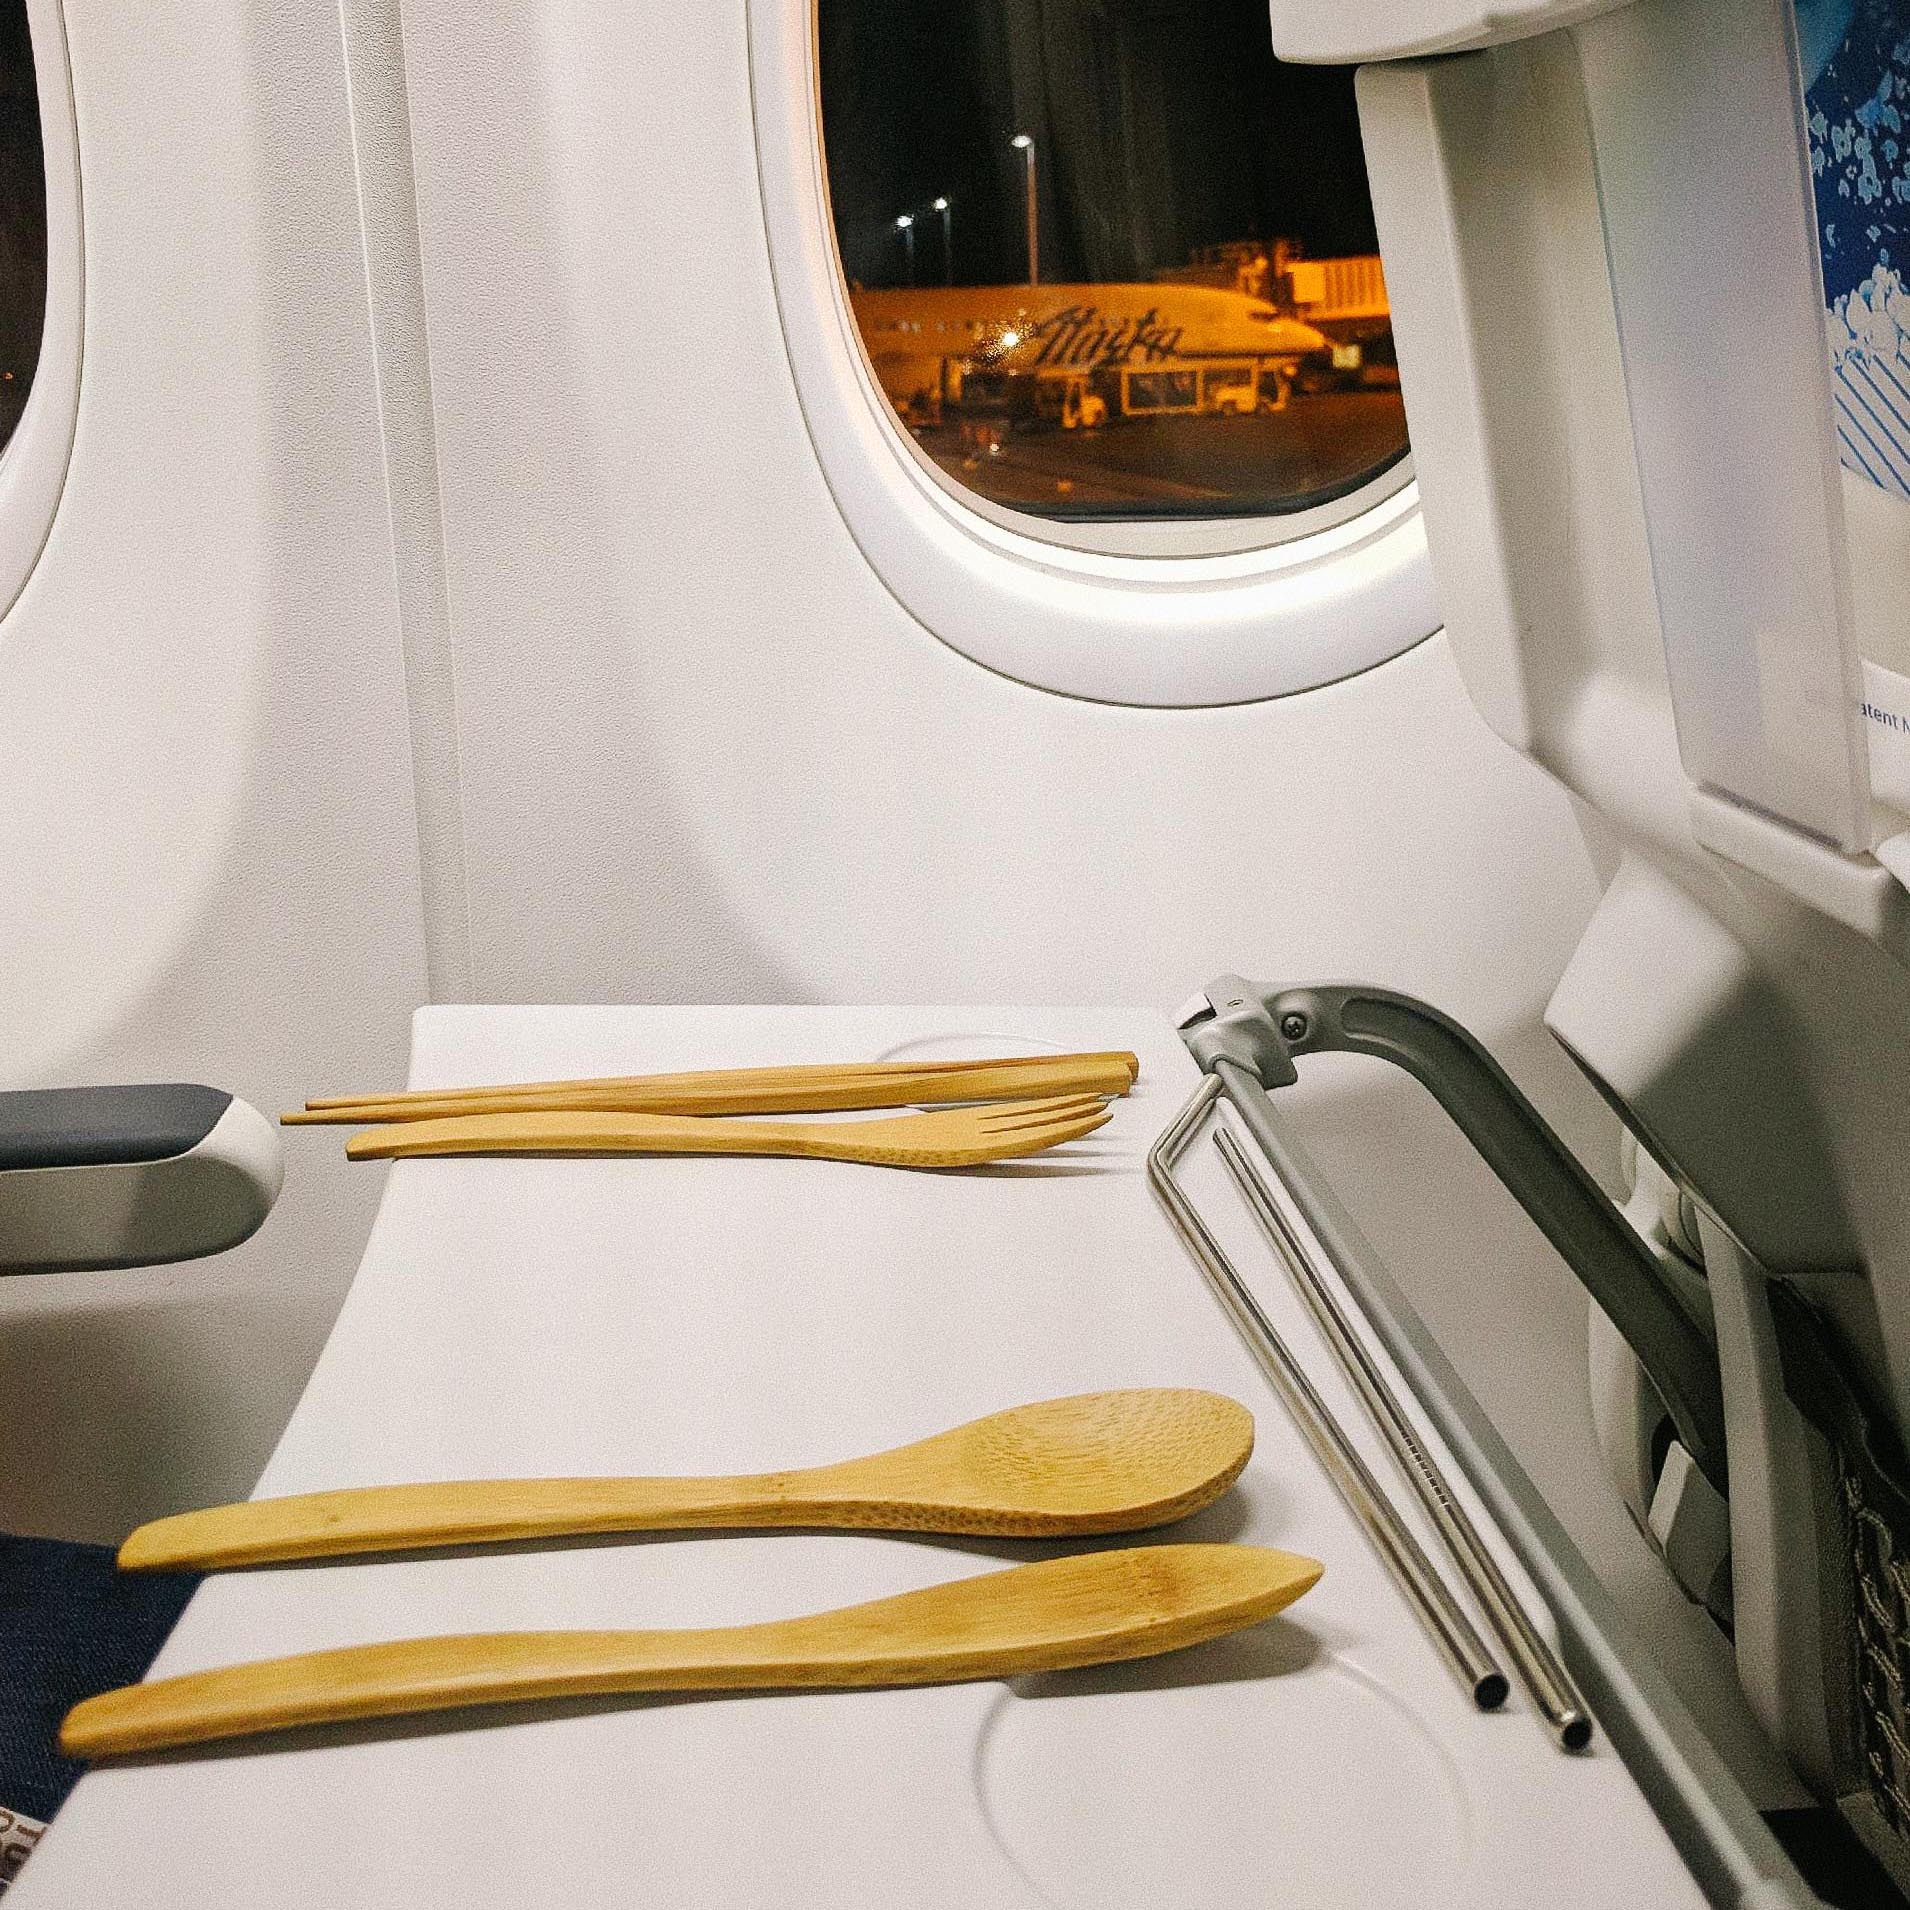 To-Go Ware reusable utensils on a flight